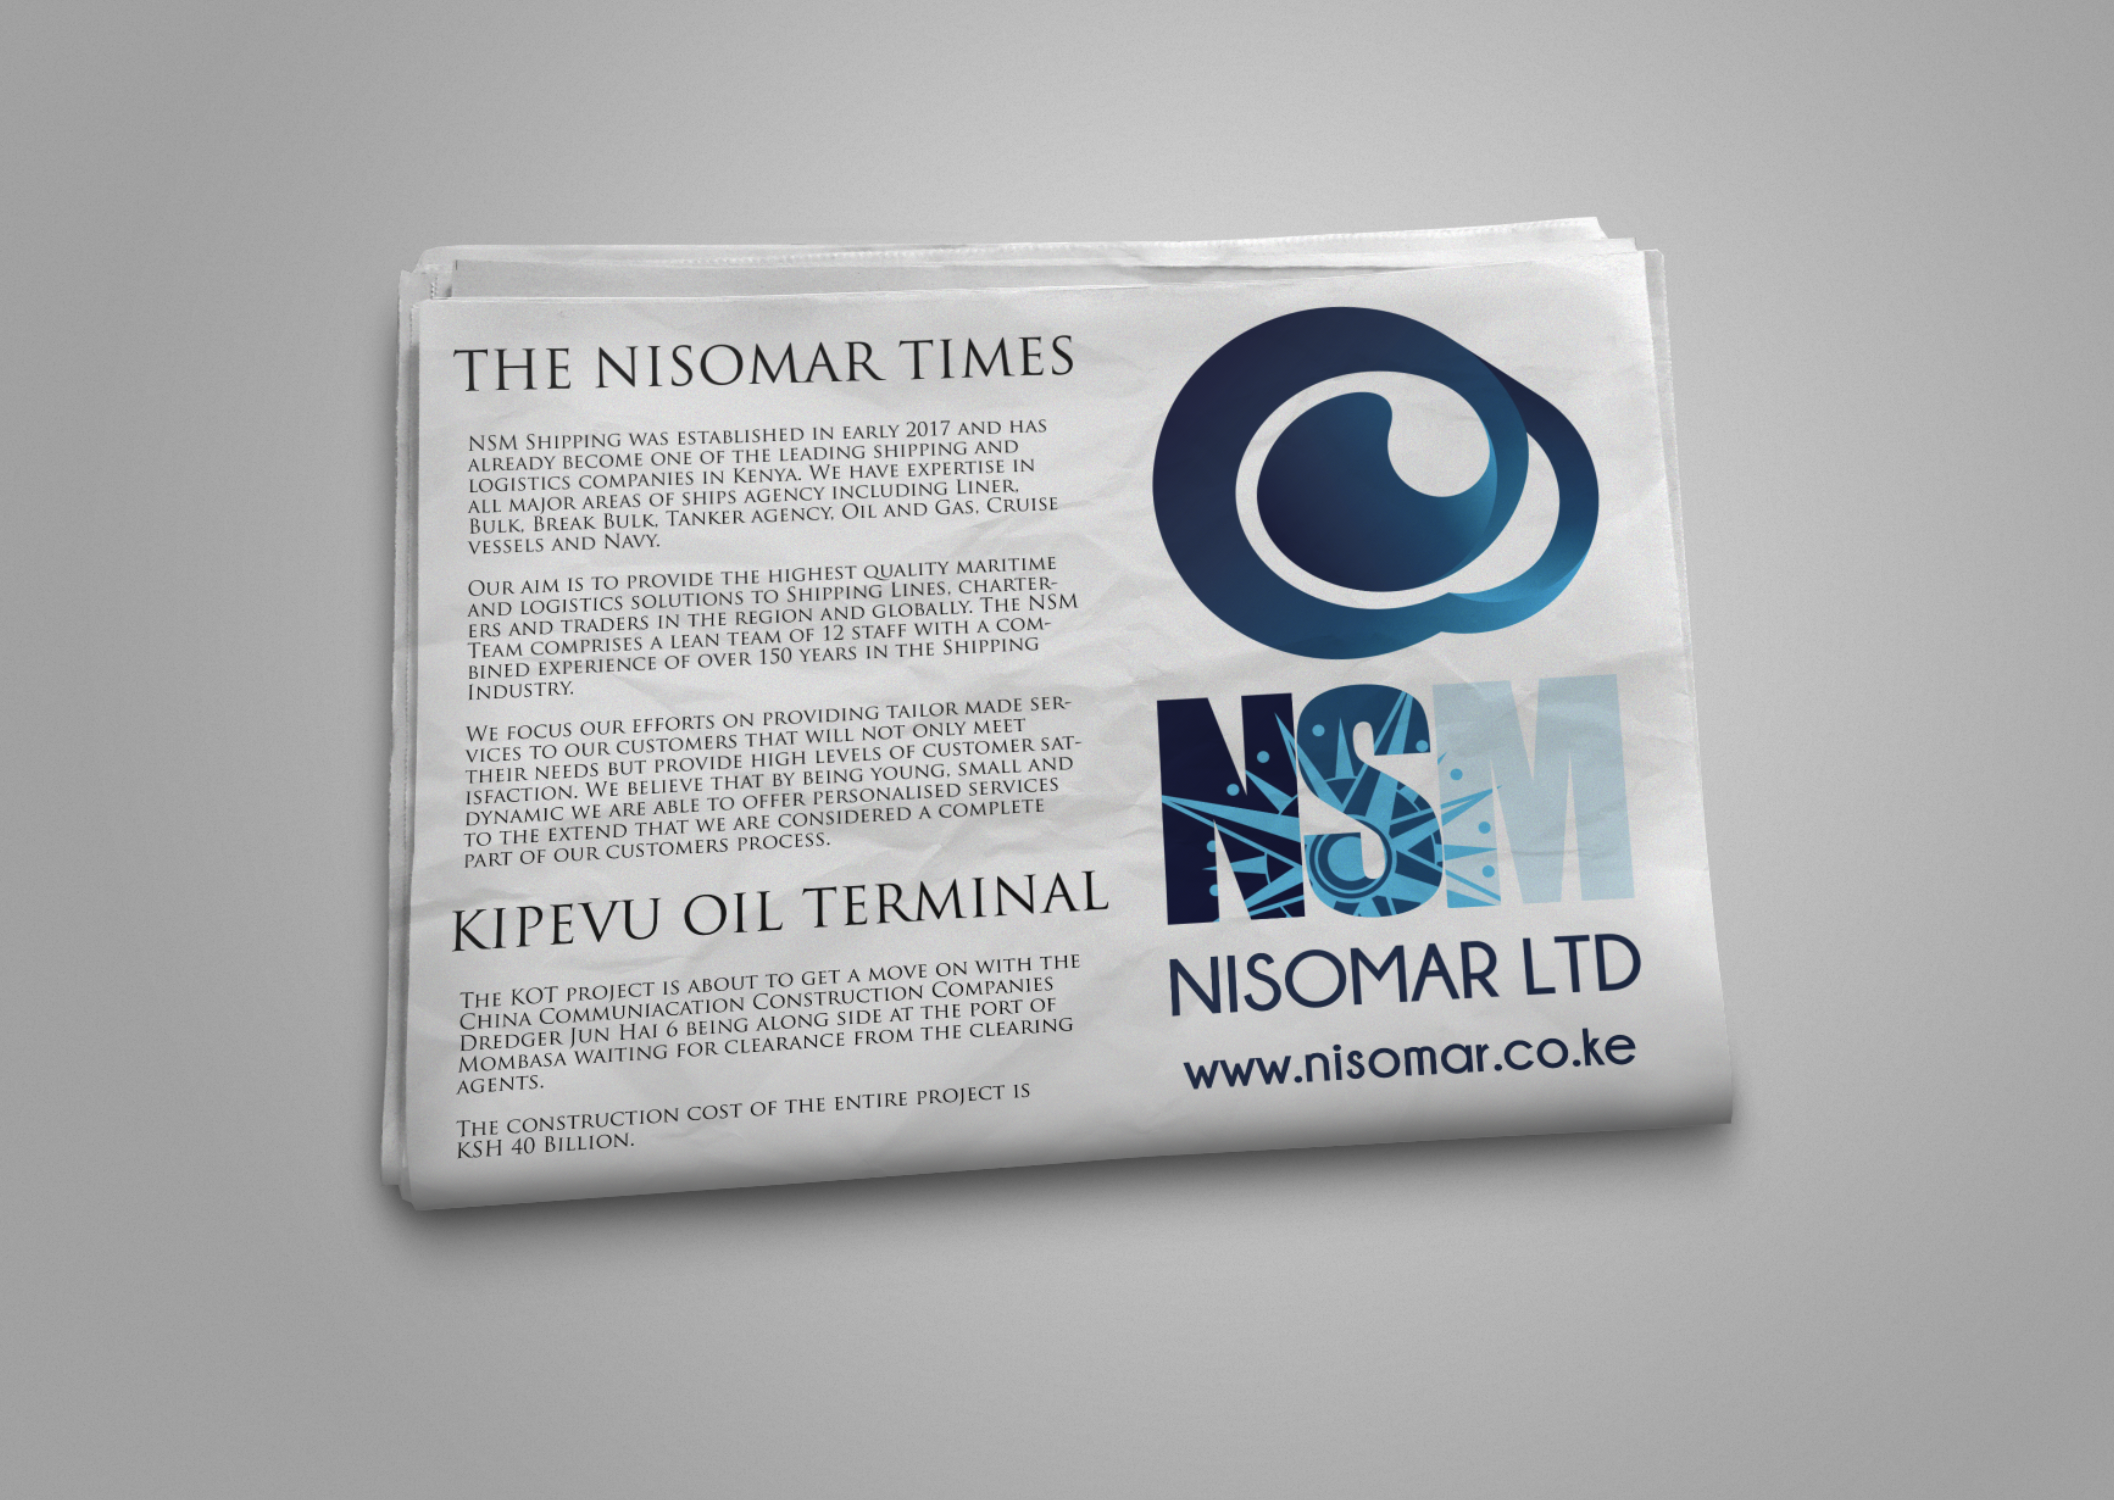 Adverts and designs for a shipping company based in Kenya